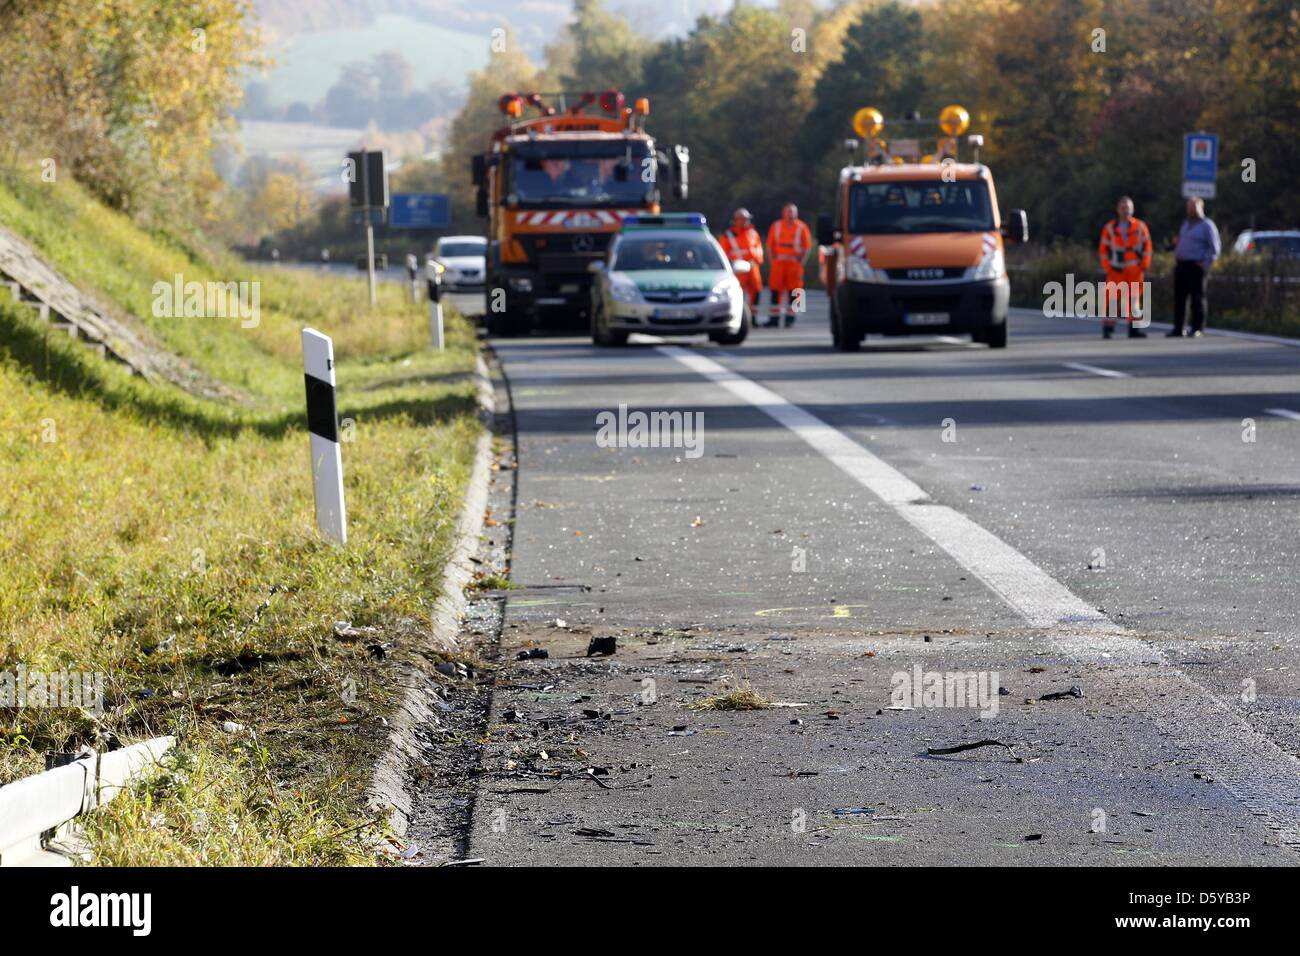 Unfallstelle Stock Photos & Unfallstelle Stock Images - Alamy